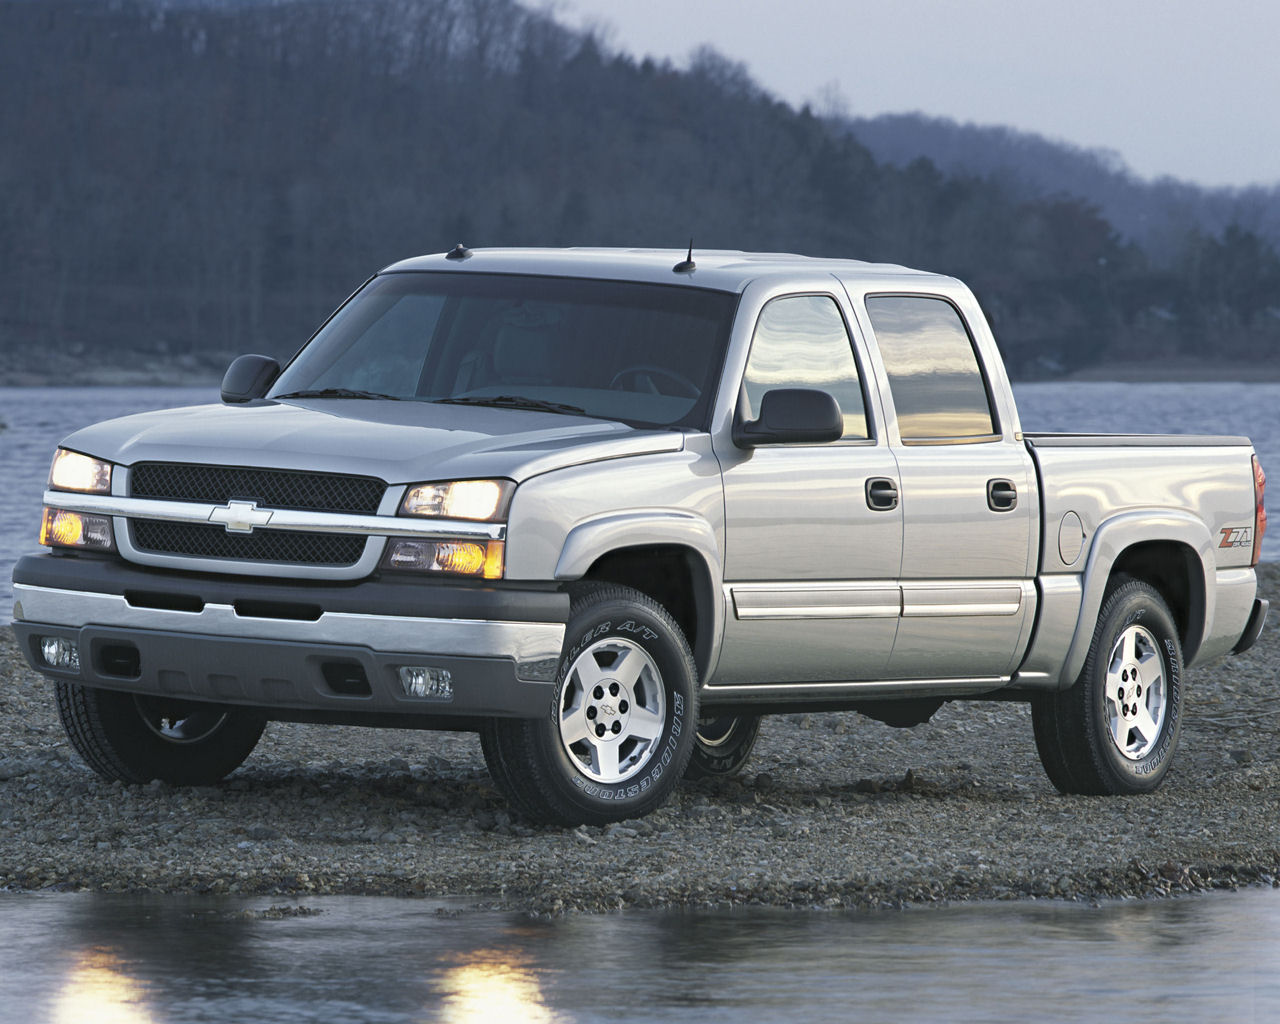 Hybrid chevy free 1280x1024 wallpaper desktop background picture